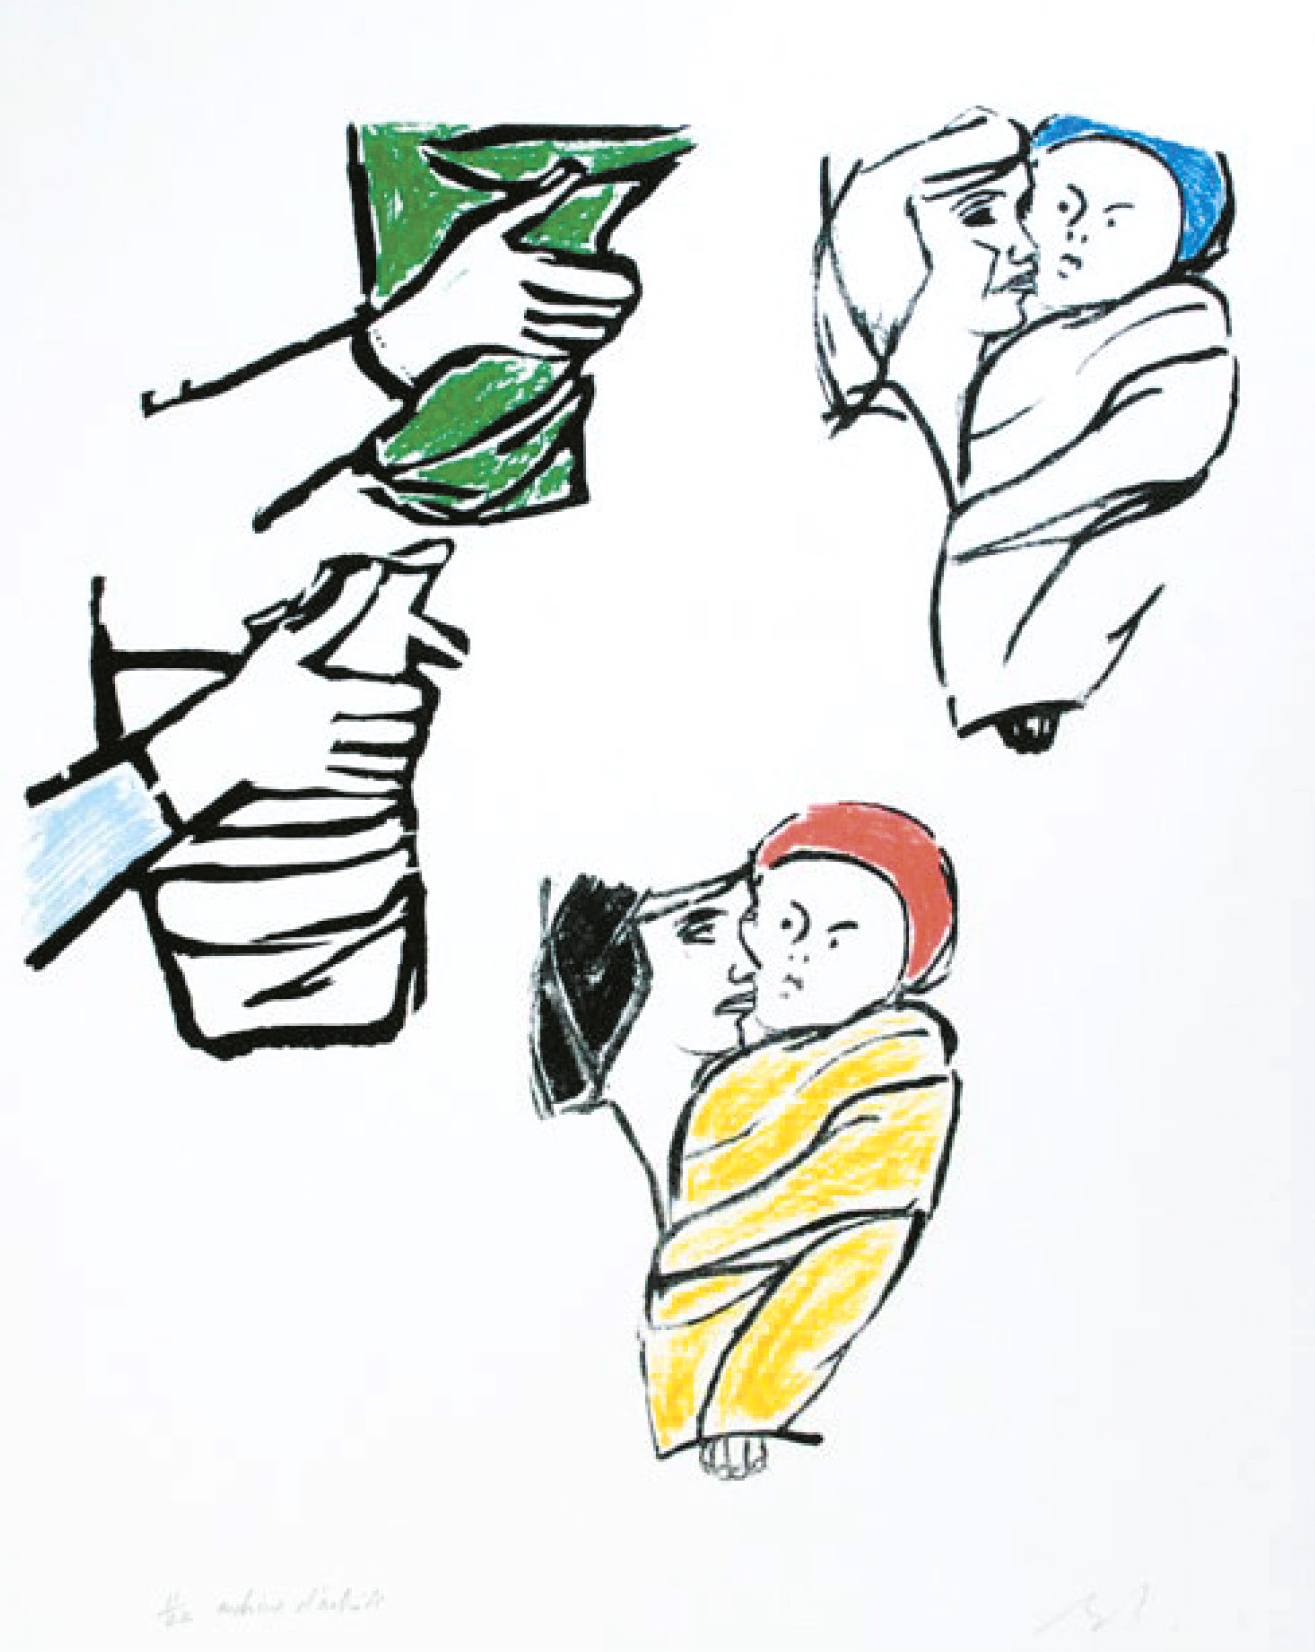 Lot 79 - Buraglio Pierre (1939) Untitled, 2005 - Serigraph N°11/22 Signed on lower right - 50 [...]